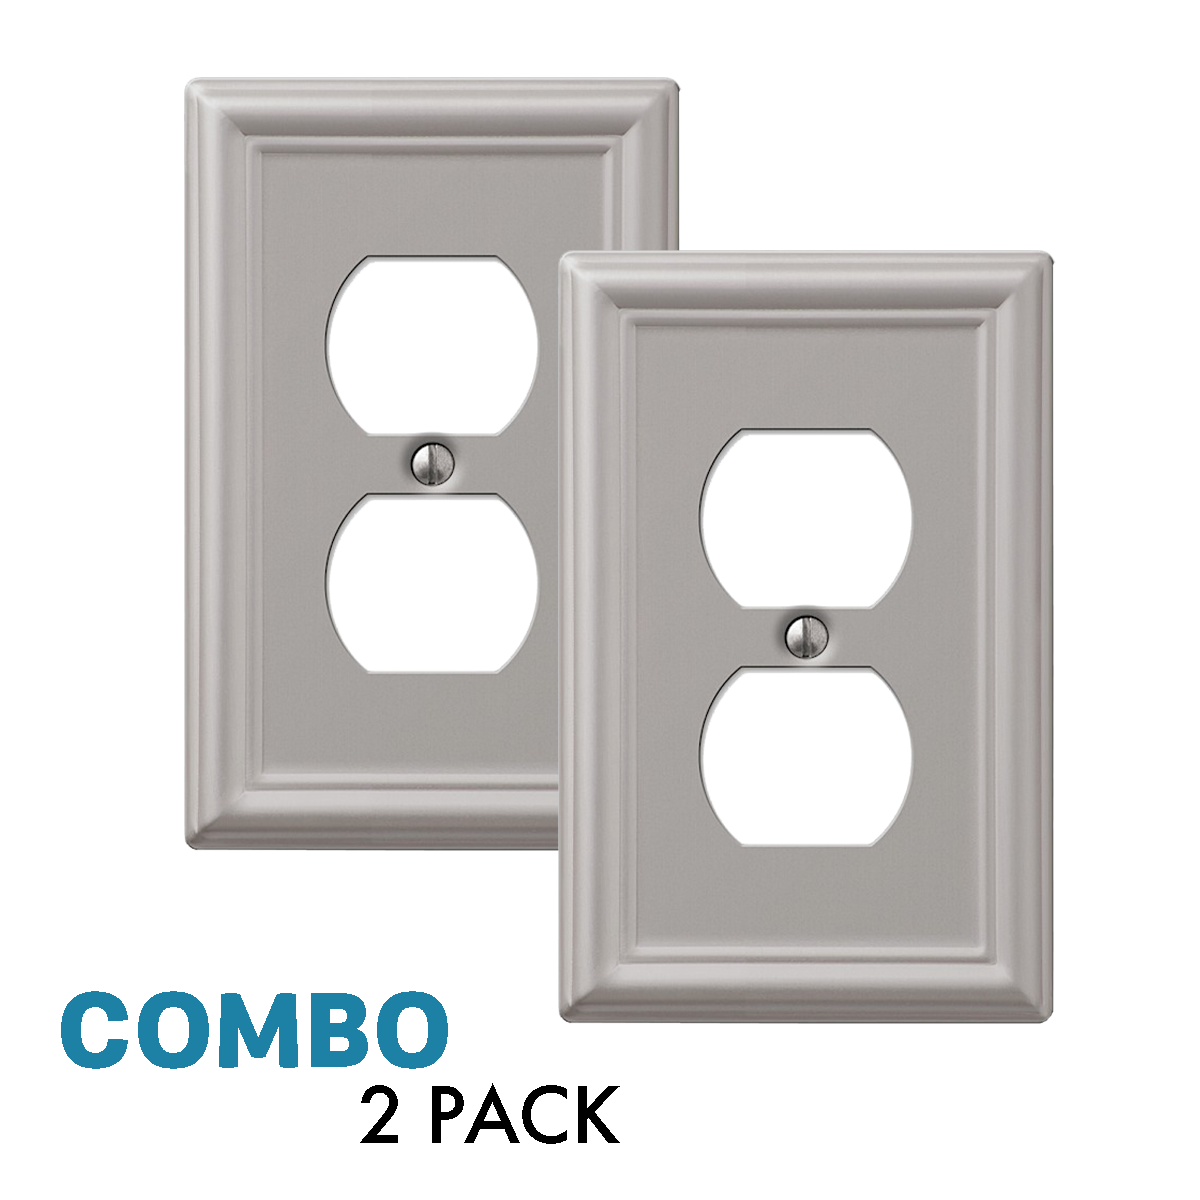 2-Pack Duplex Outlet Wall Plate Elegant Steel, Brushed Nickel Electrical Outlets, Switches & Accessories